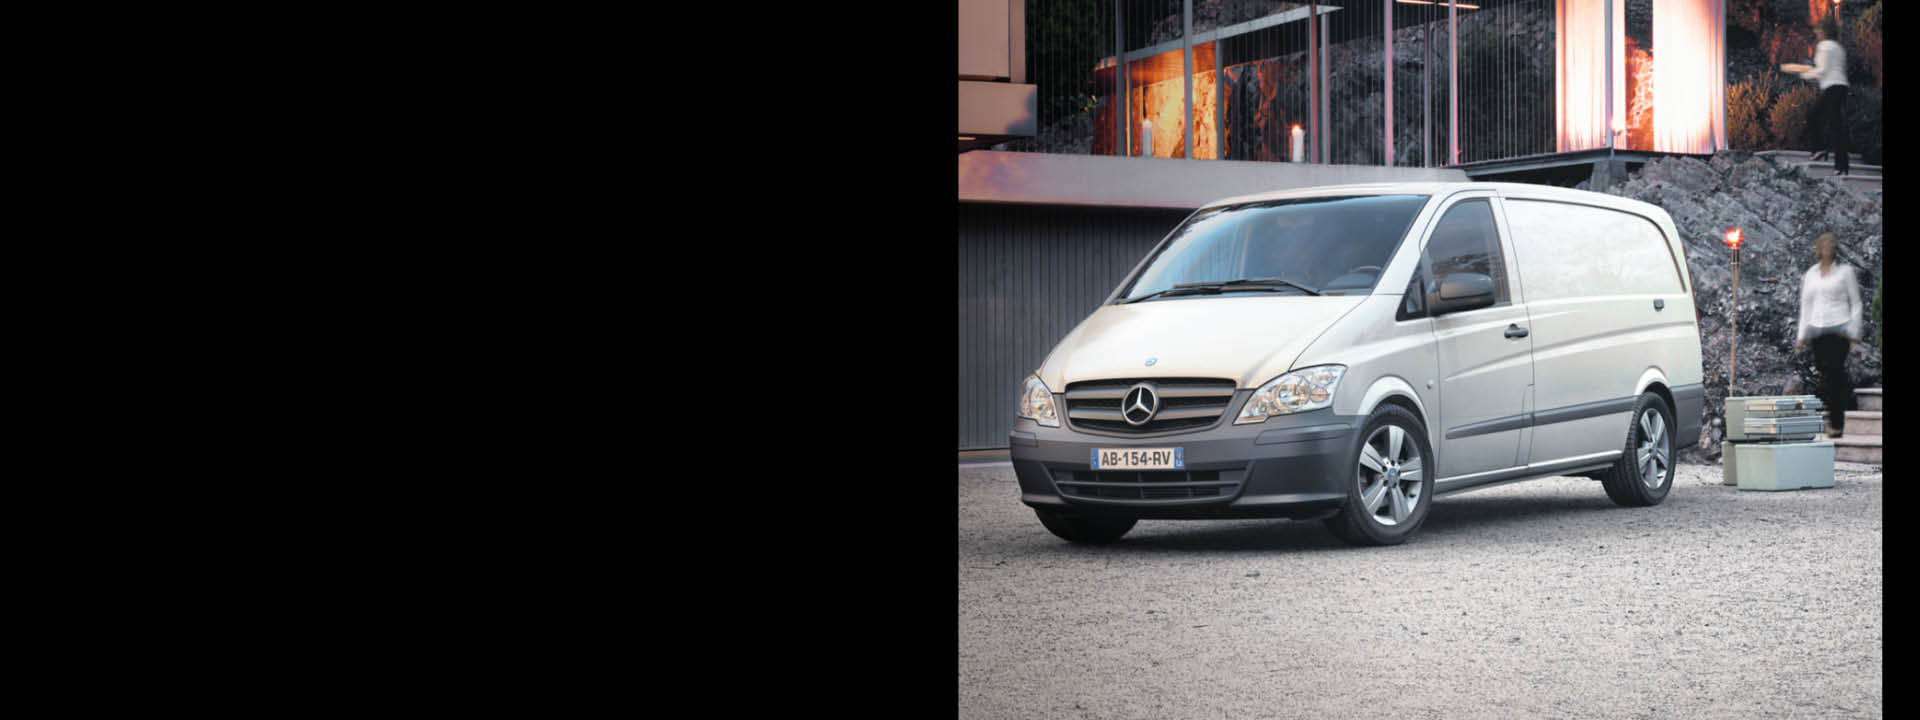 2 Vito services for just £299*